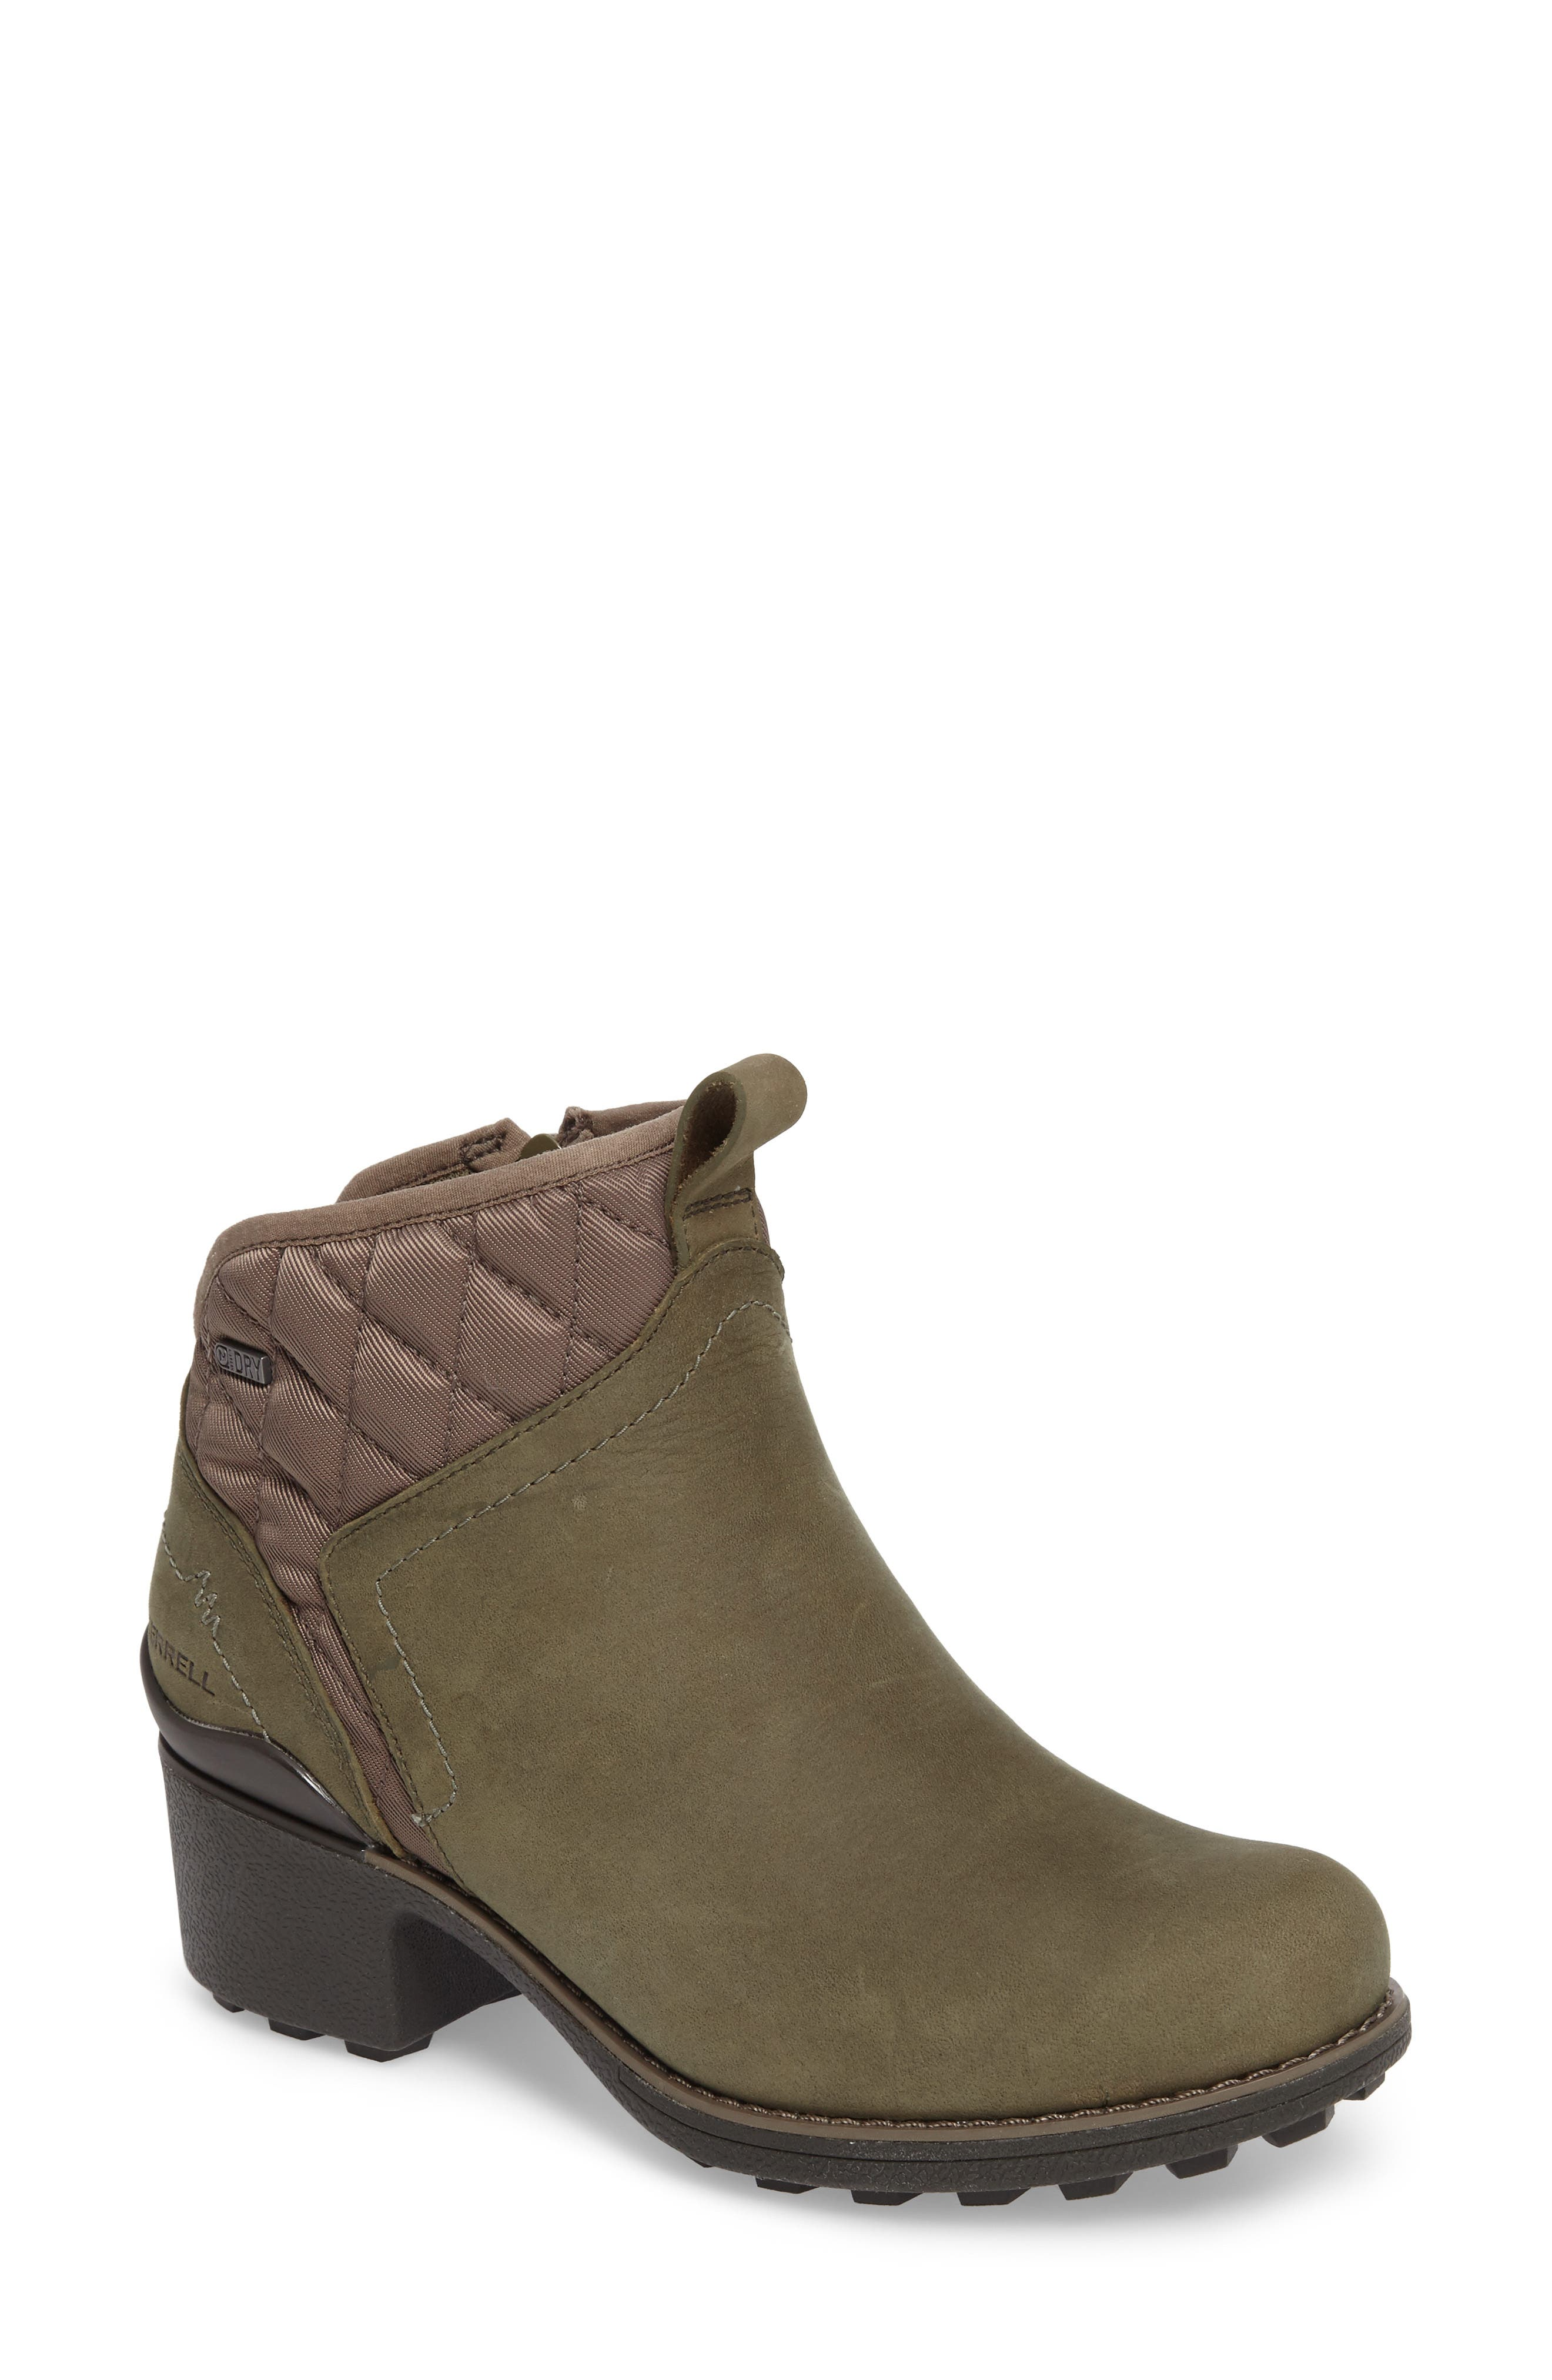 Merrell Chateau Mid Pull Waterproof Bootie